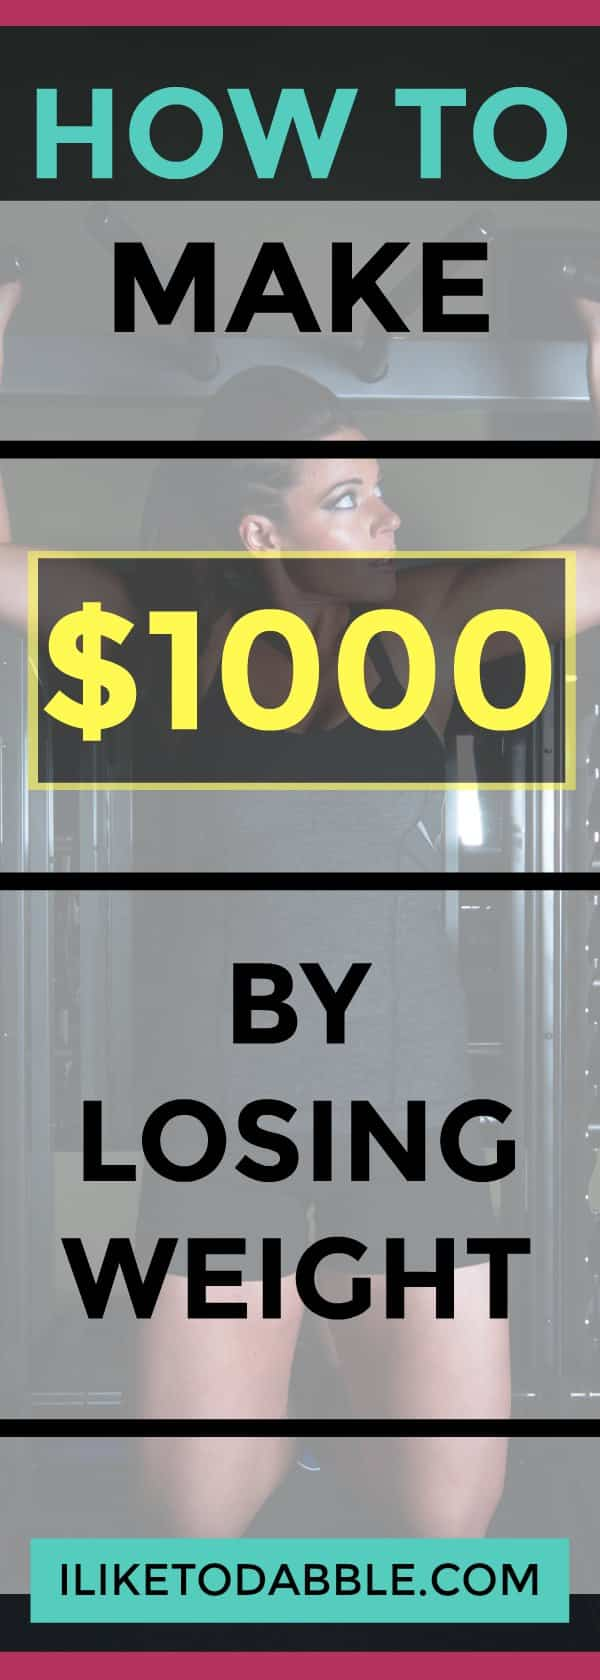 How To Make $1000 By Losing Weight